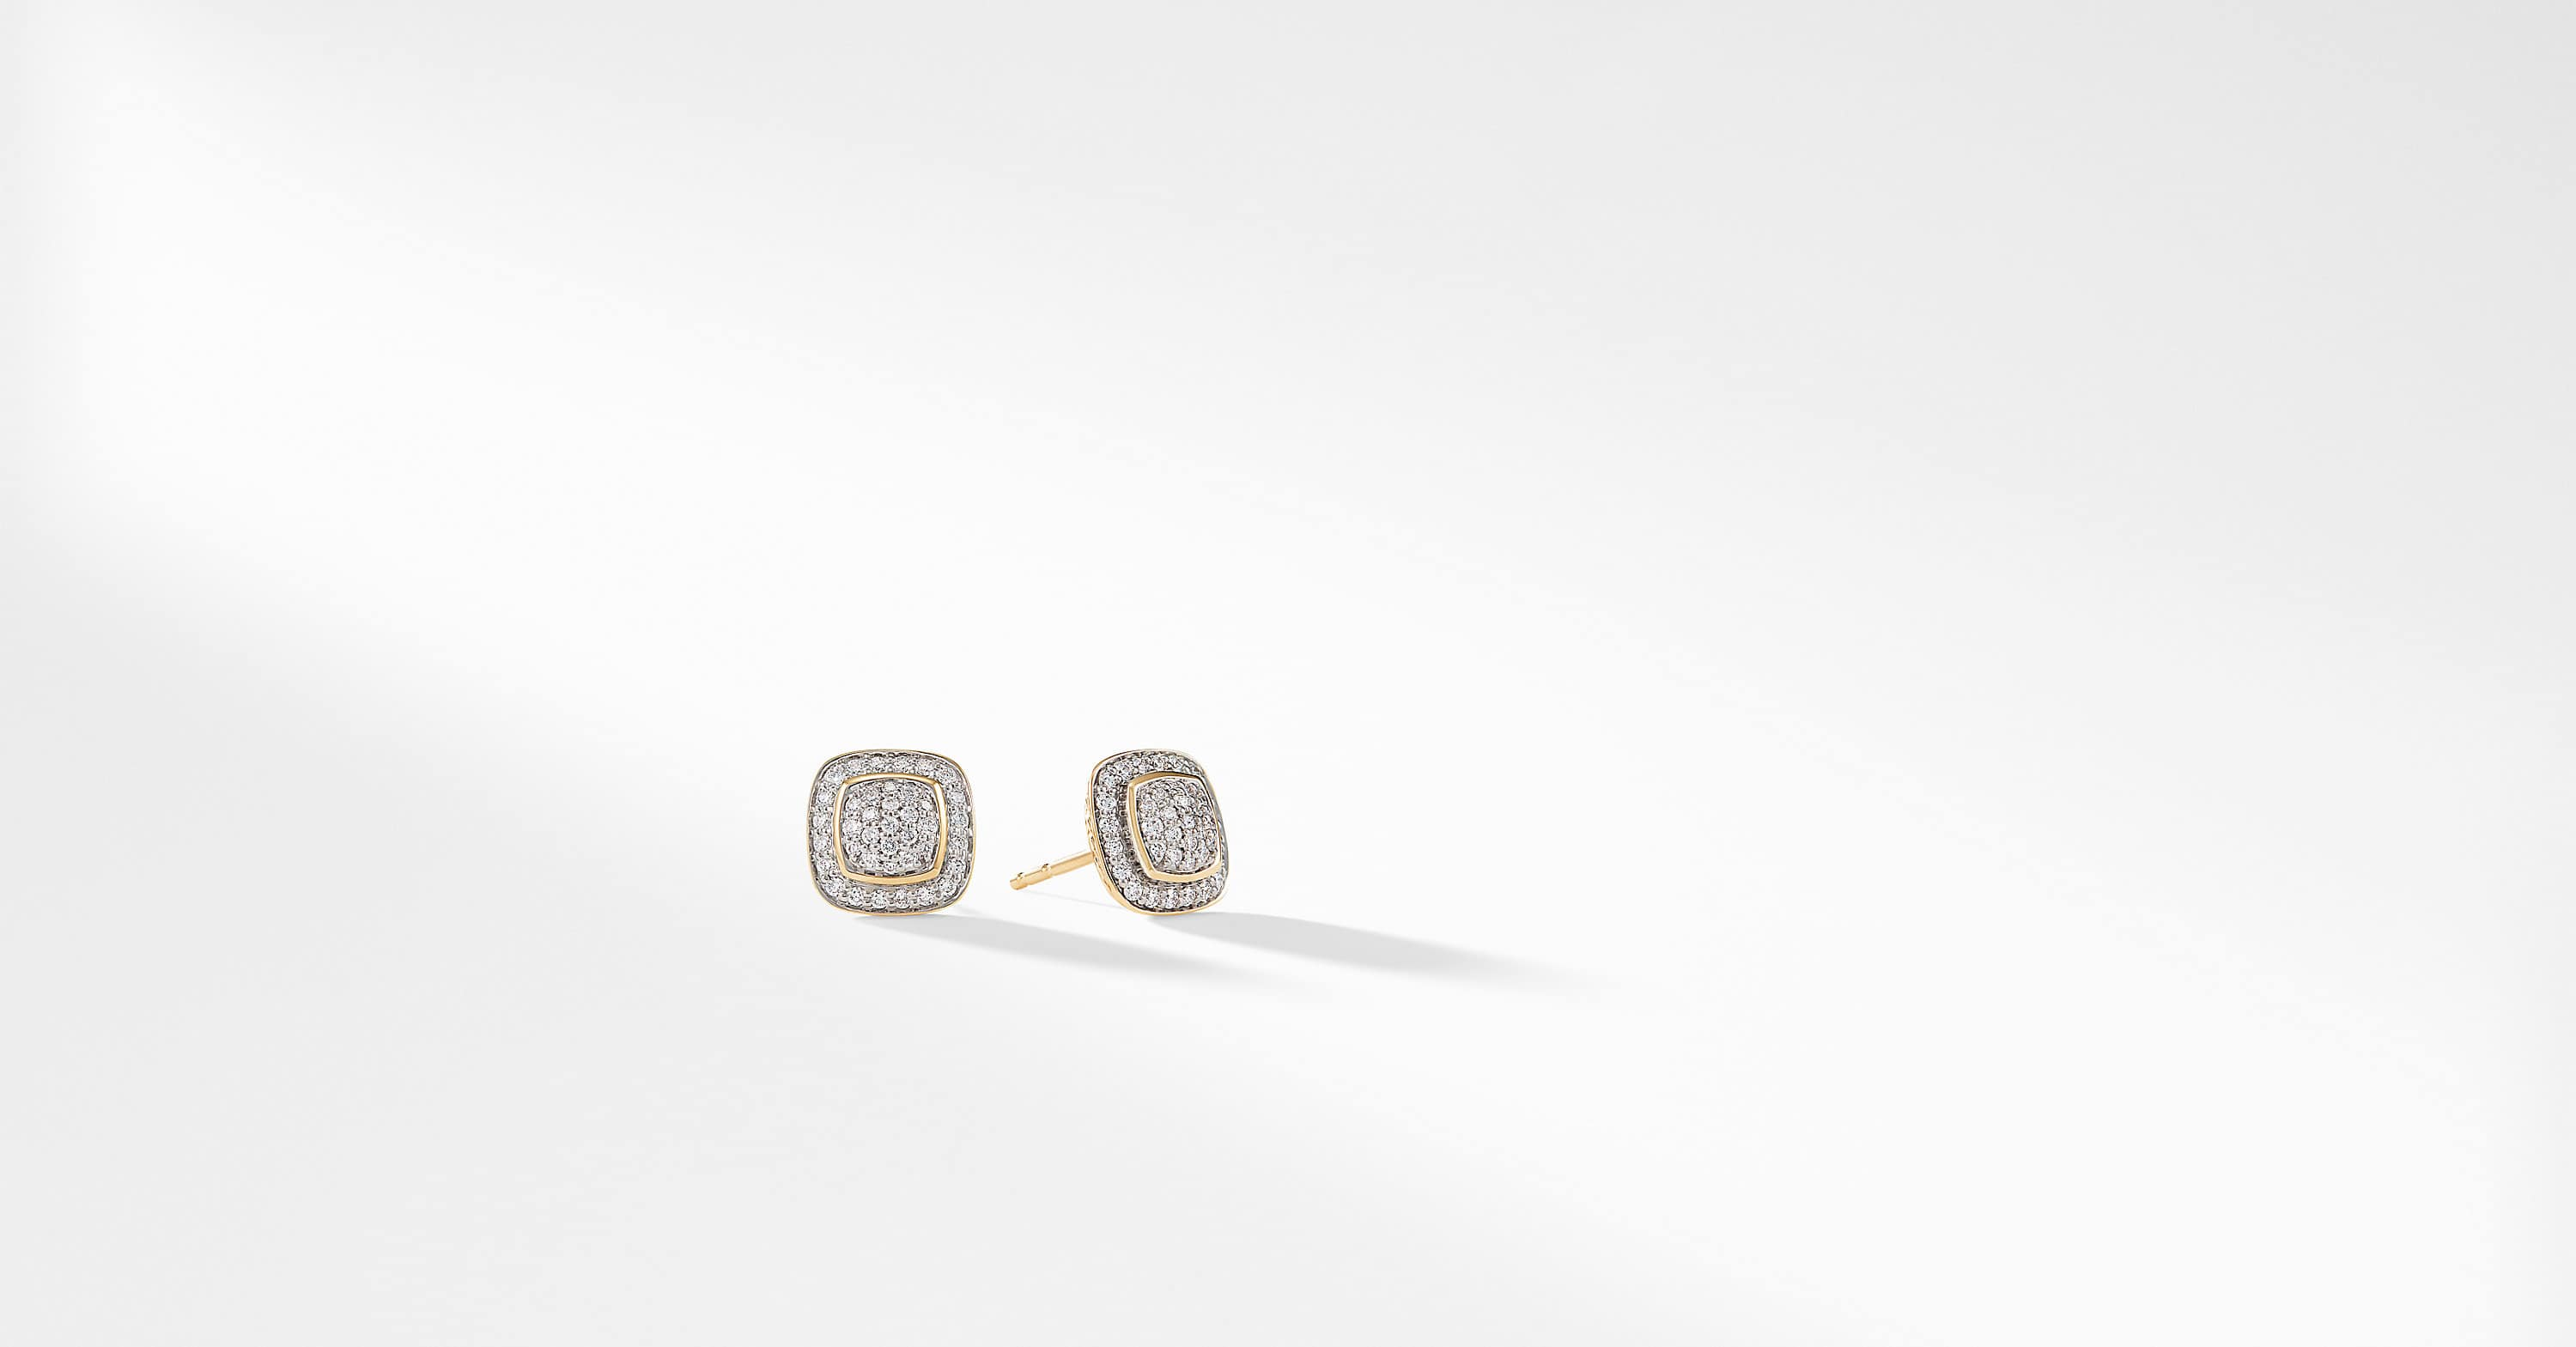 Petite Albion Earrings with Diamonds in 18K Gold